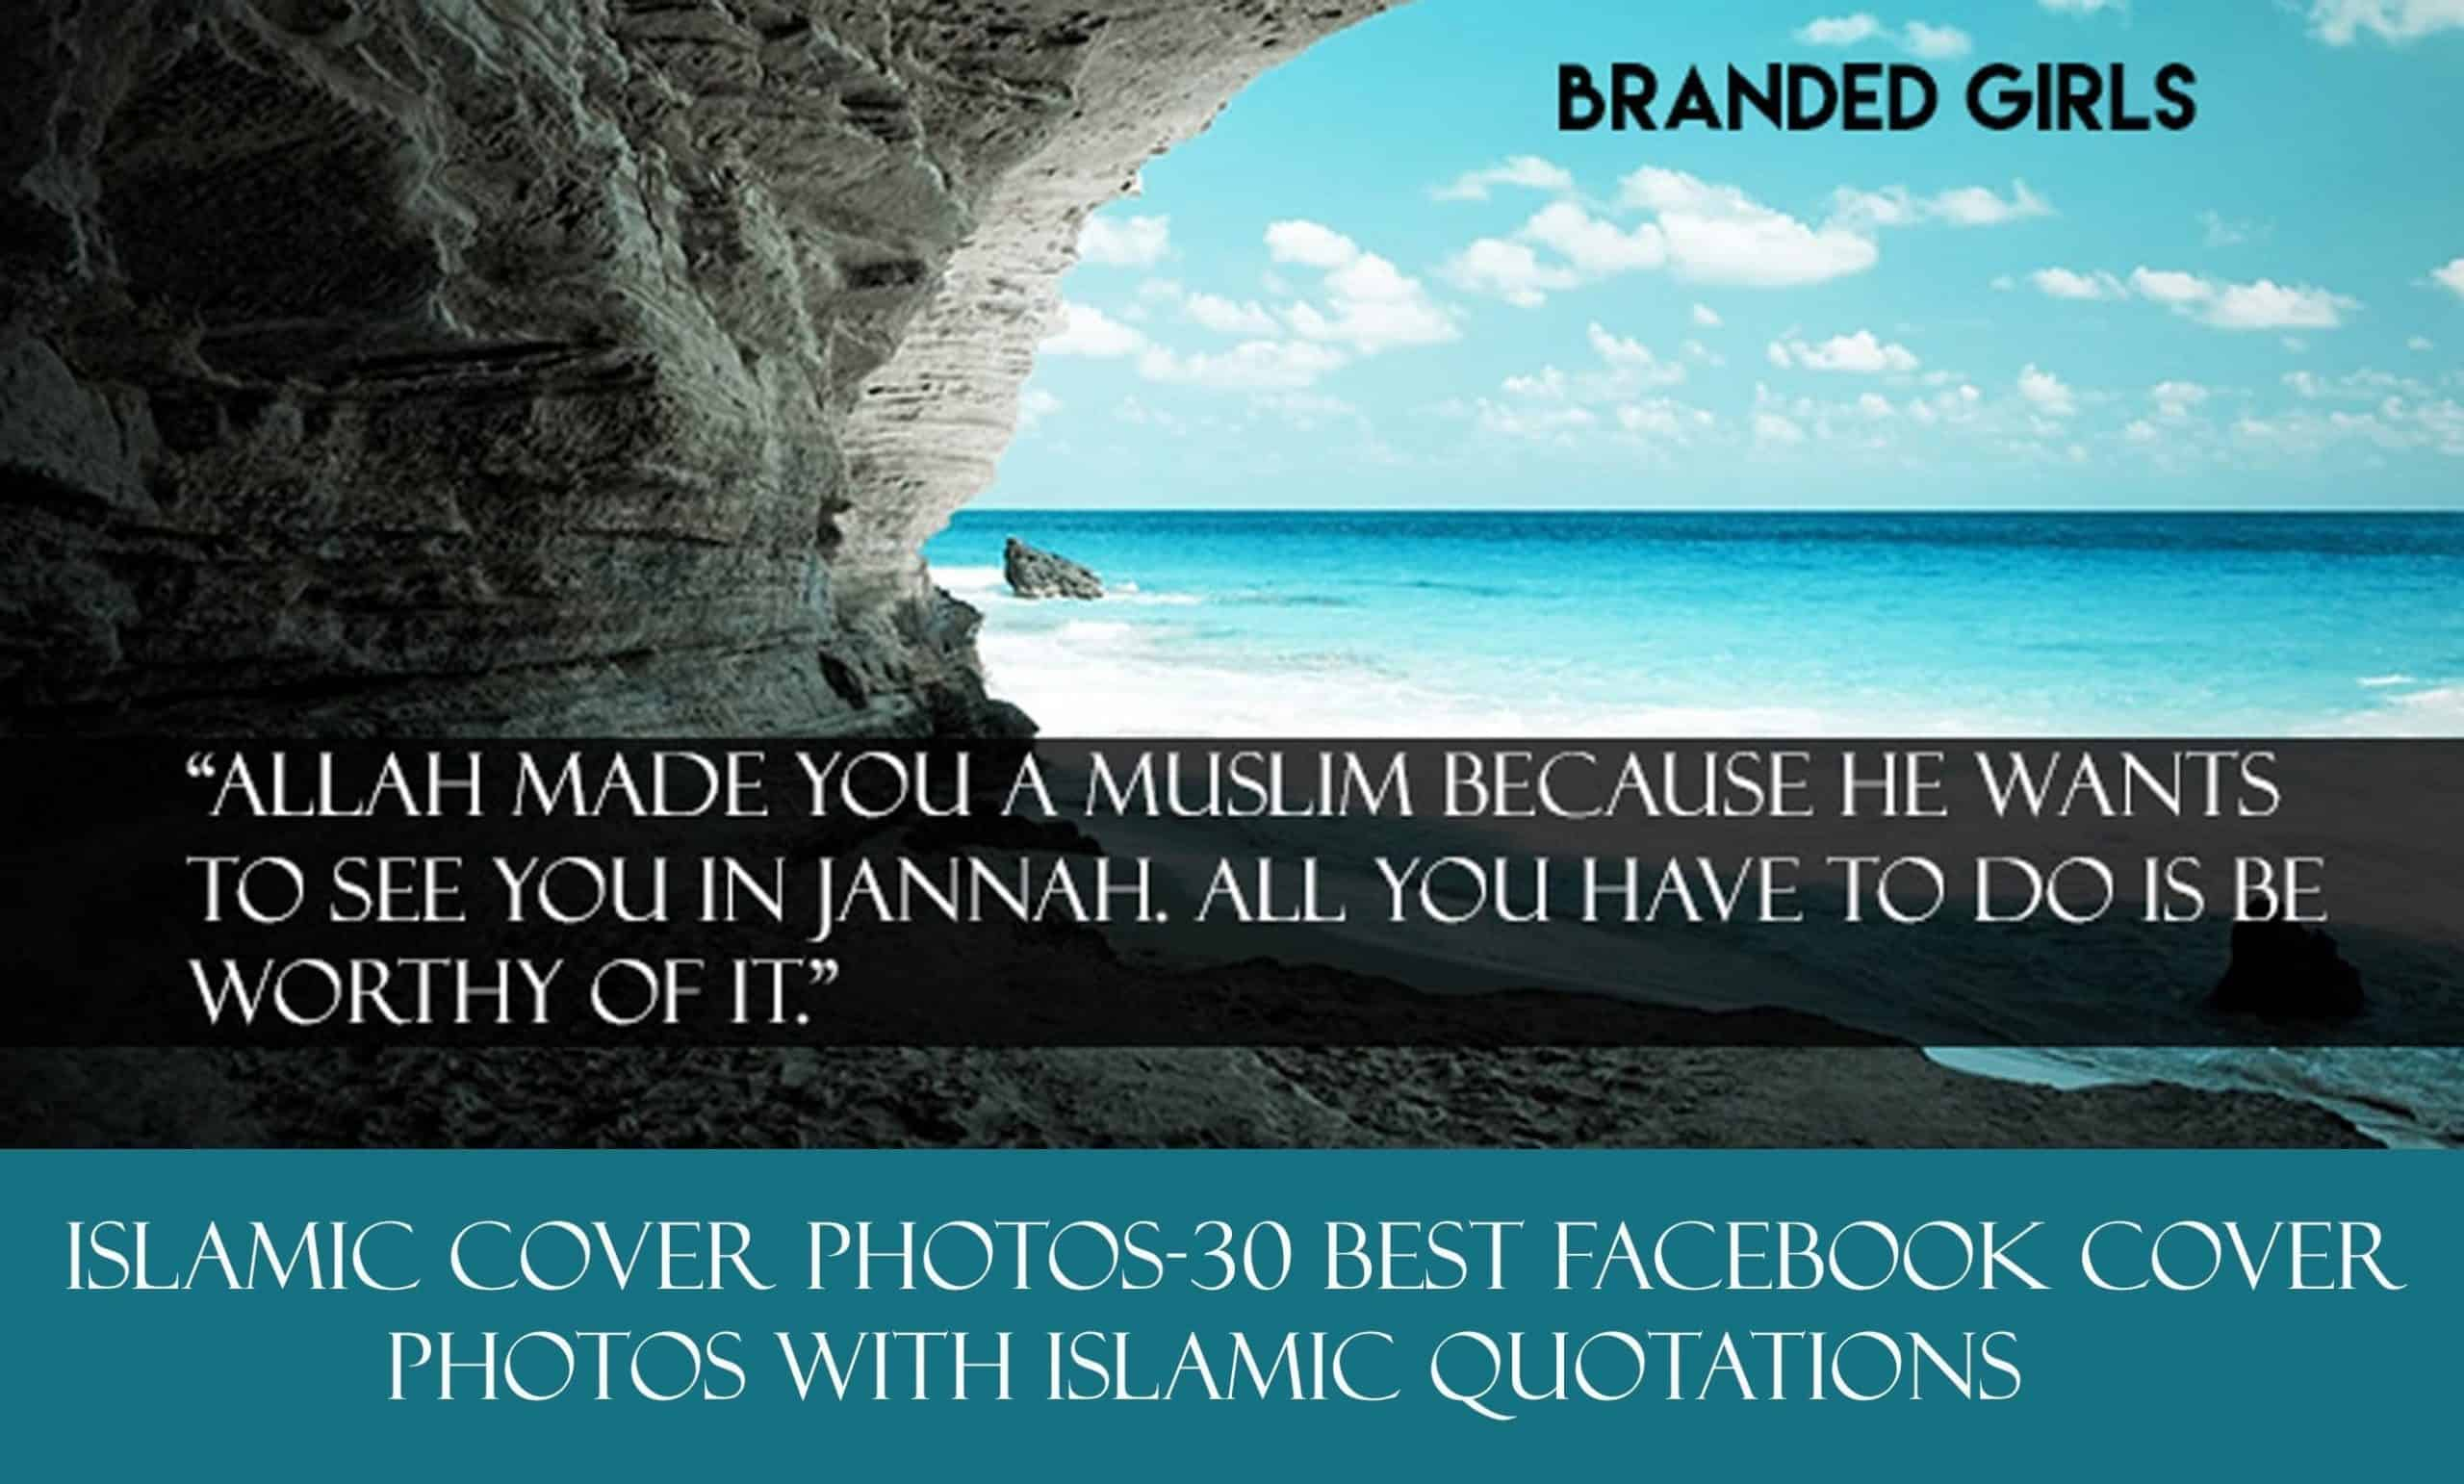 polyvore-sample Islamic Cover Photos-30 Best Facebook Covers Photos with Quotations